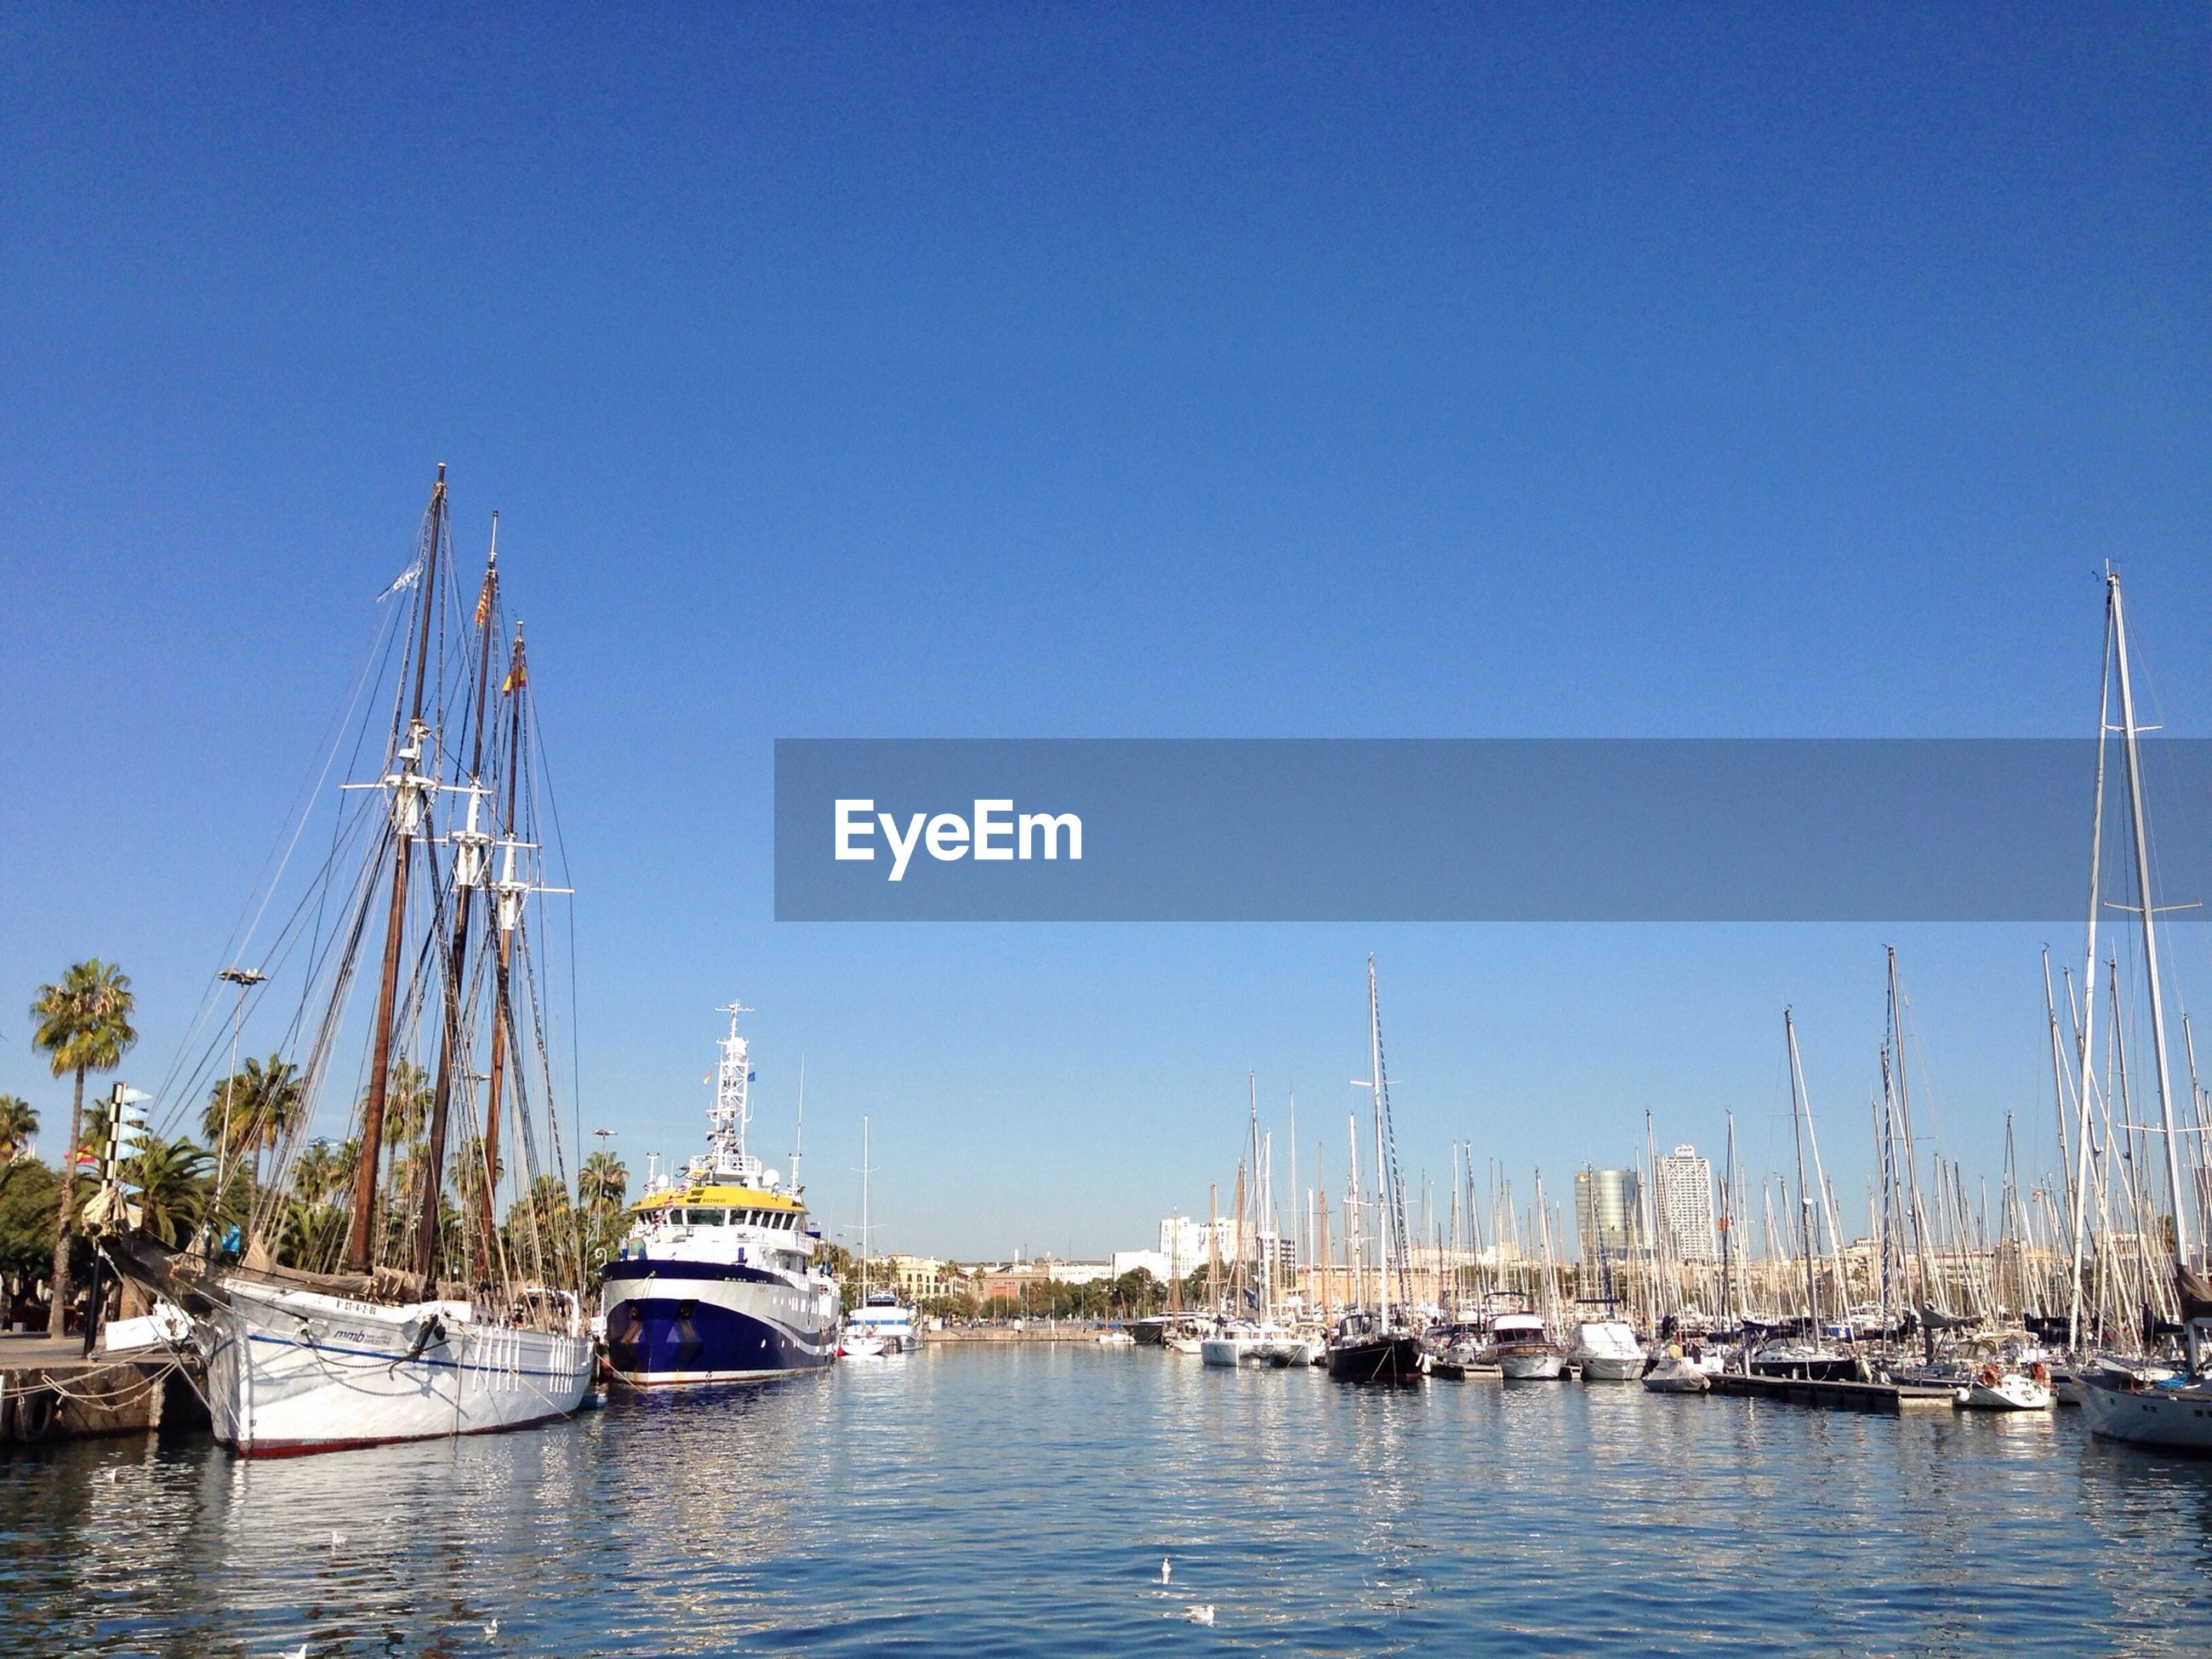 Sailboats moored in lake against clear blue sky